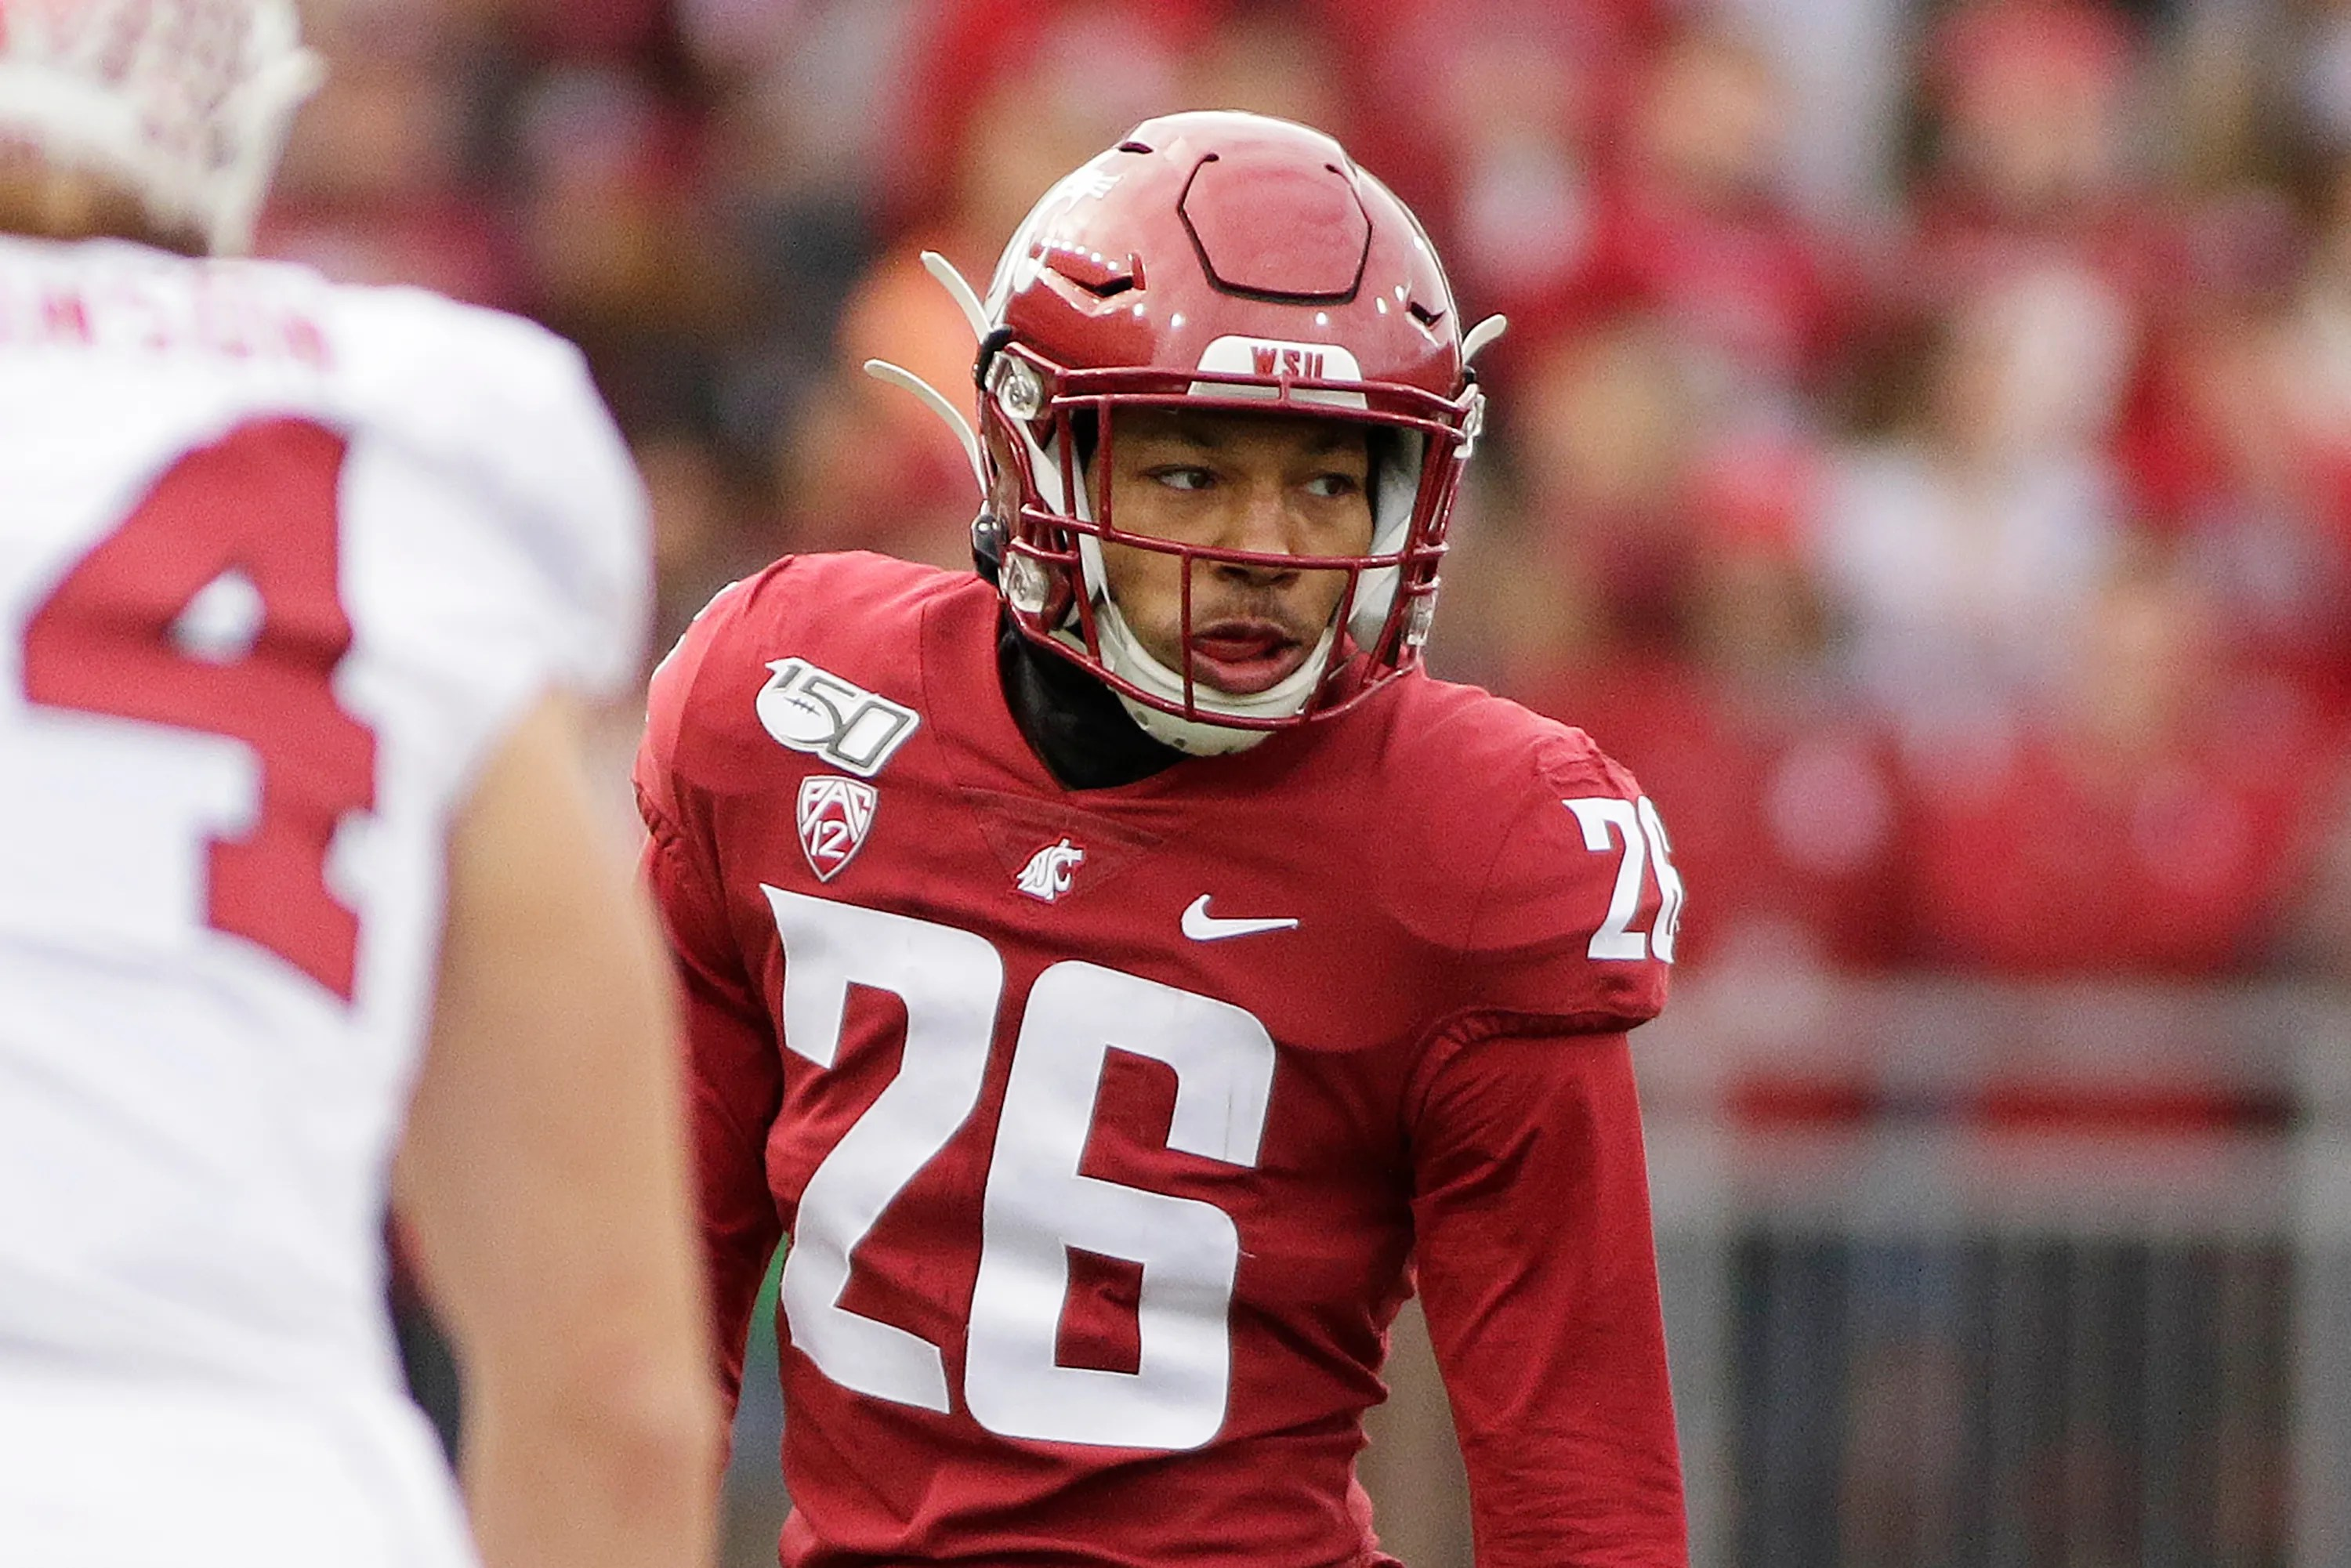 Bryce Beekman Washington State Defensive Back Dies At 22